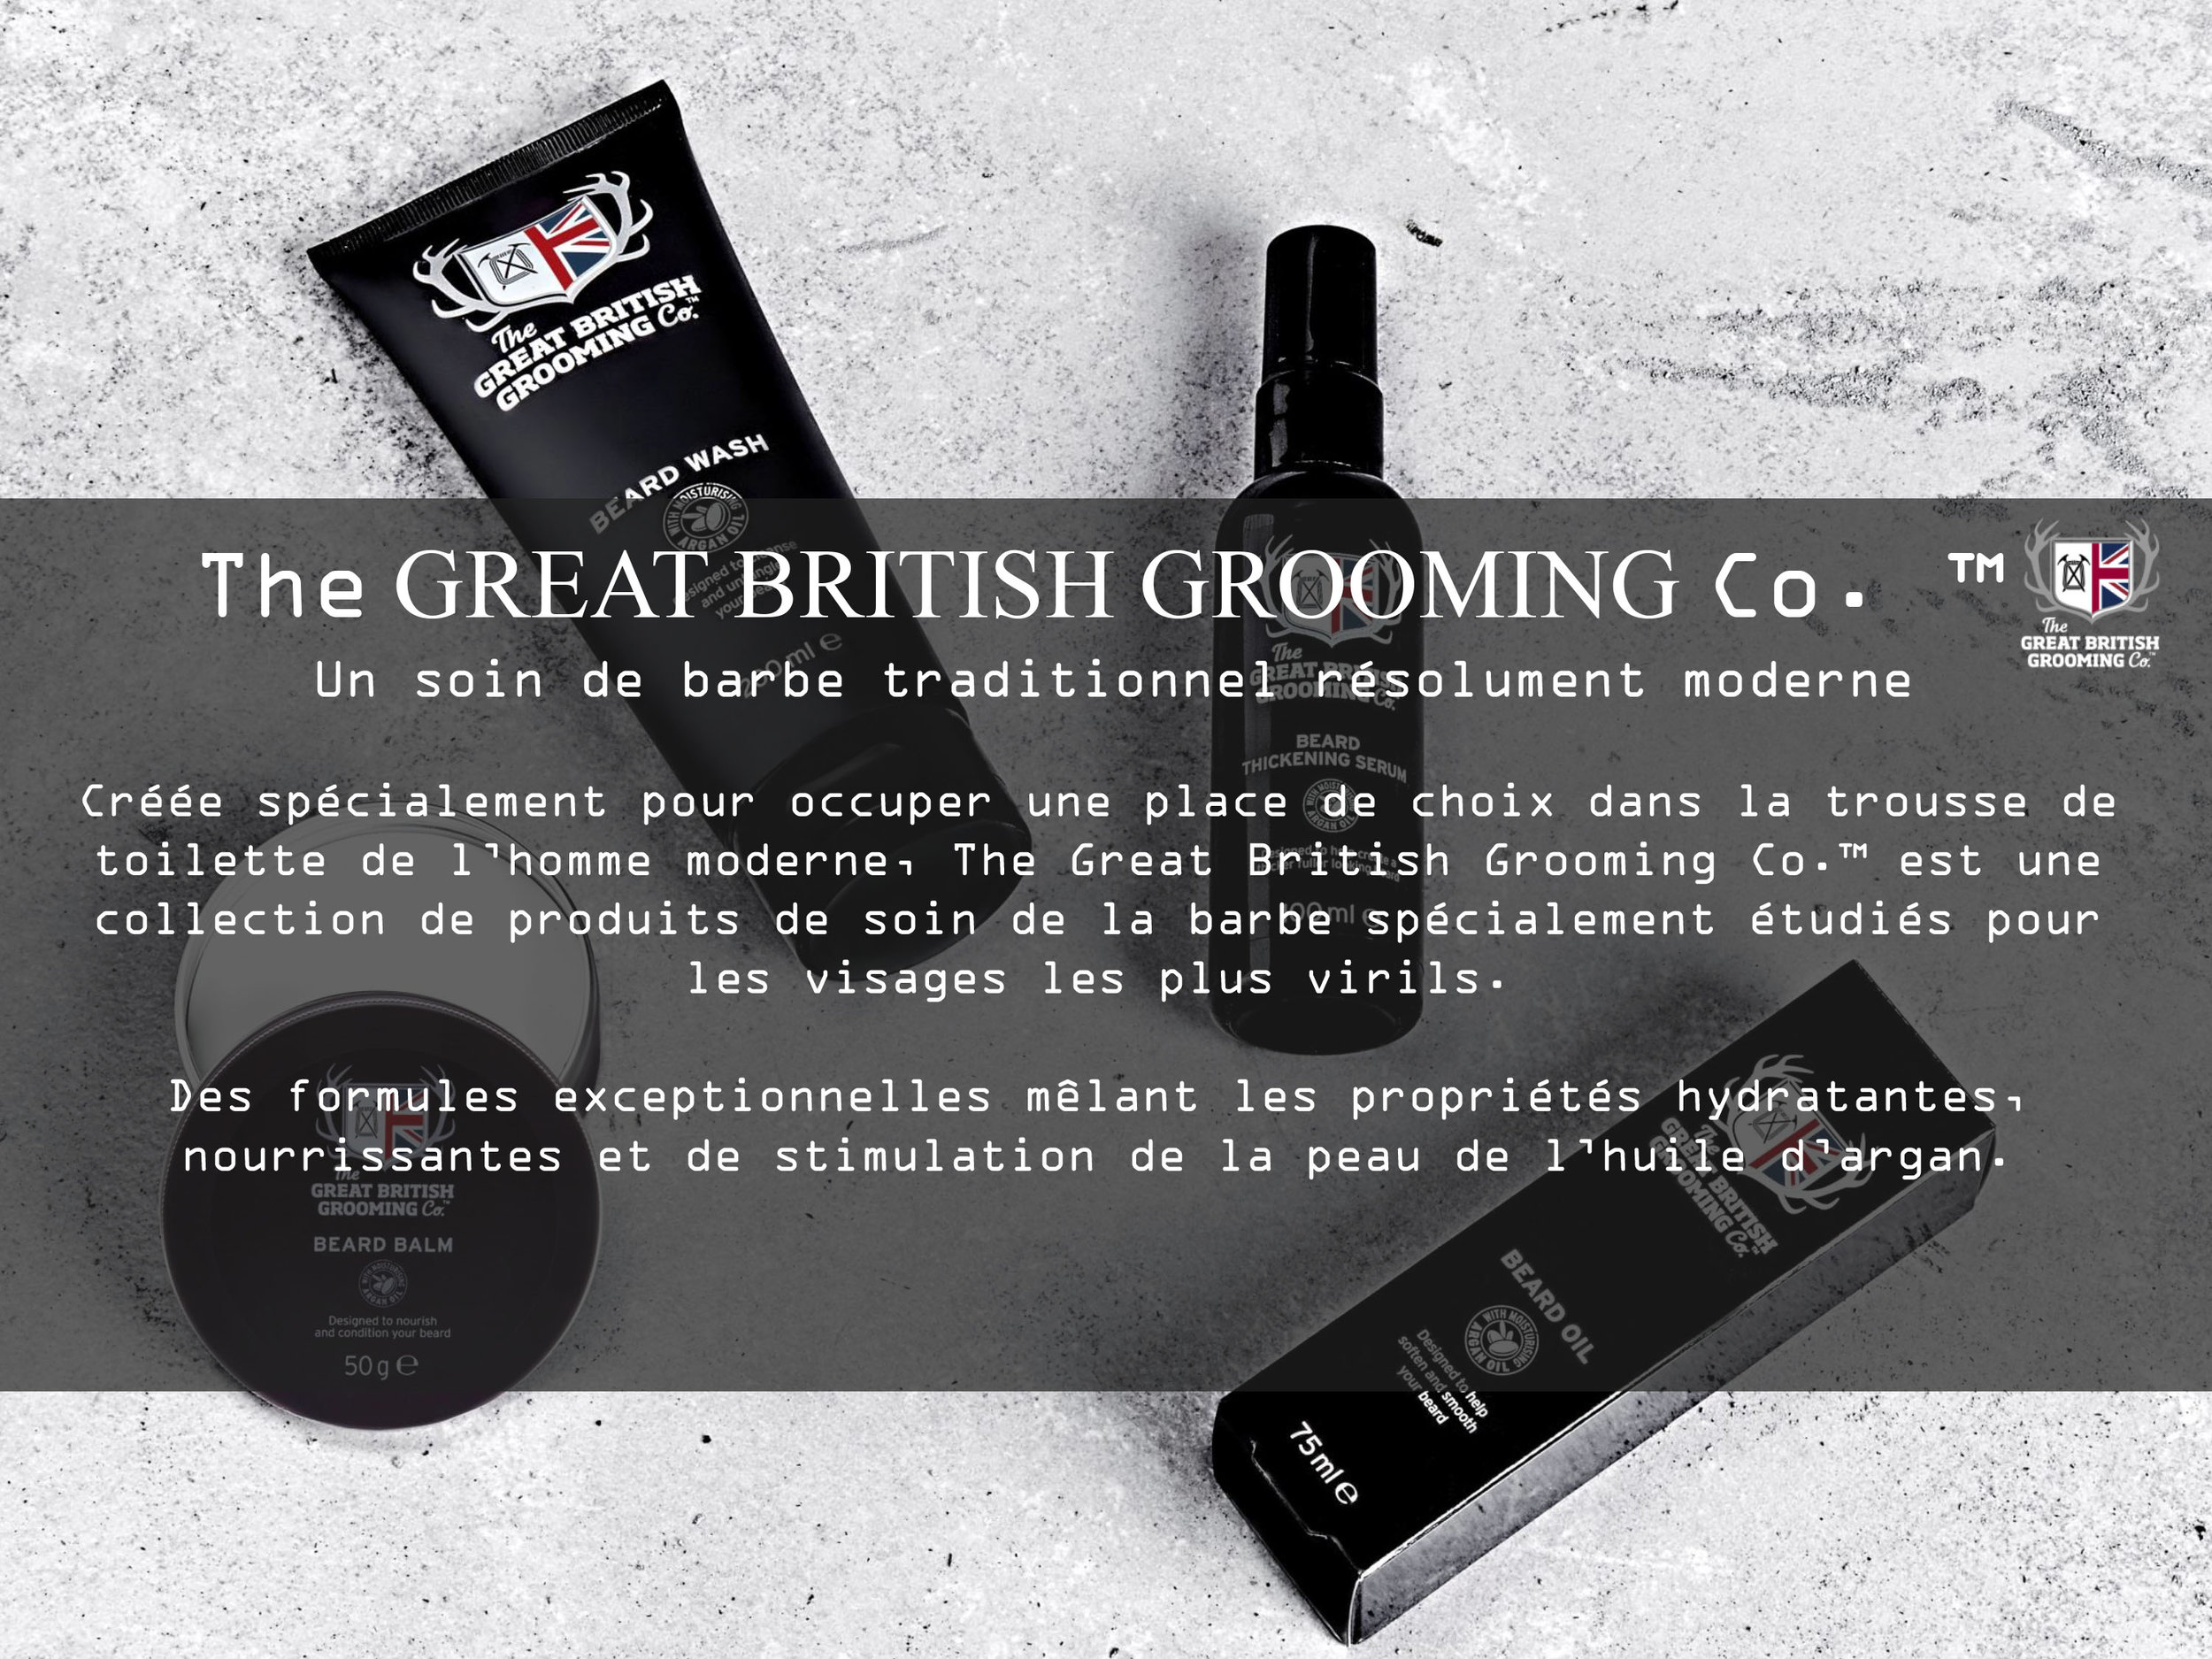 The Great British Grooming Co 2.jpg